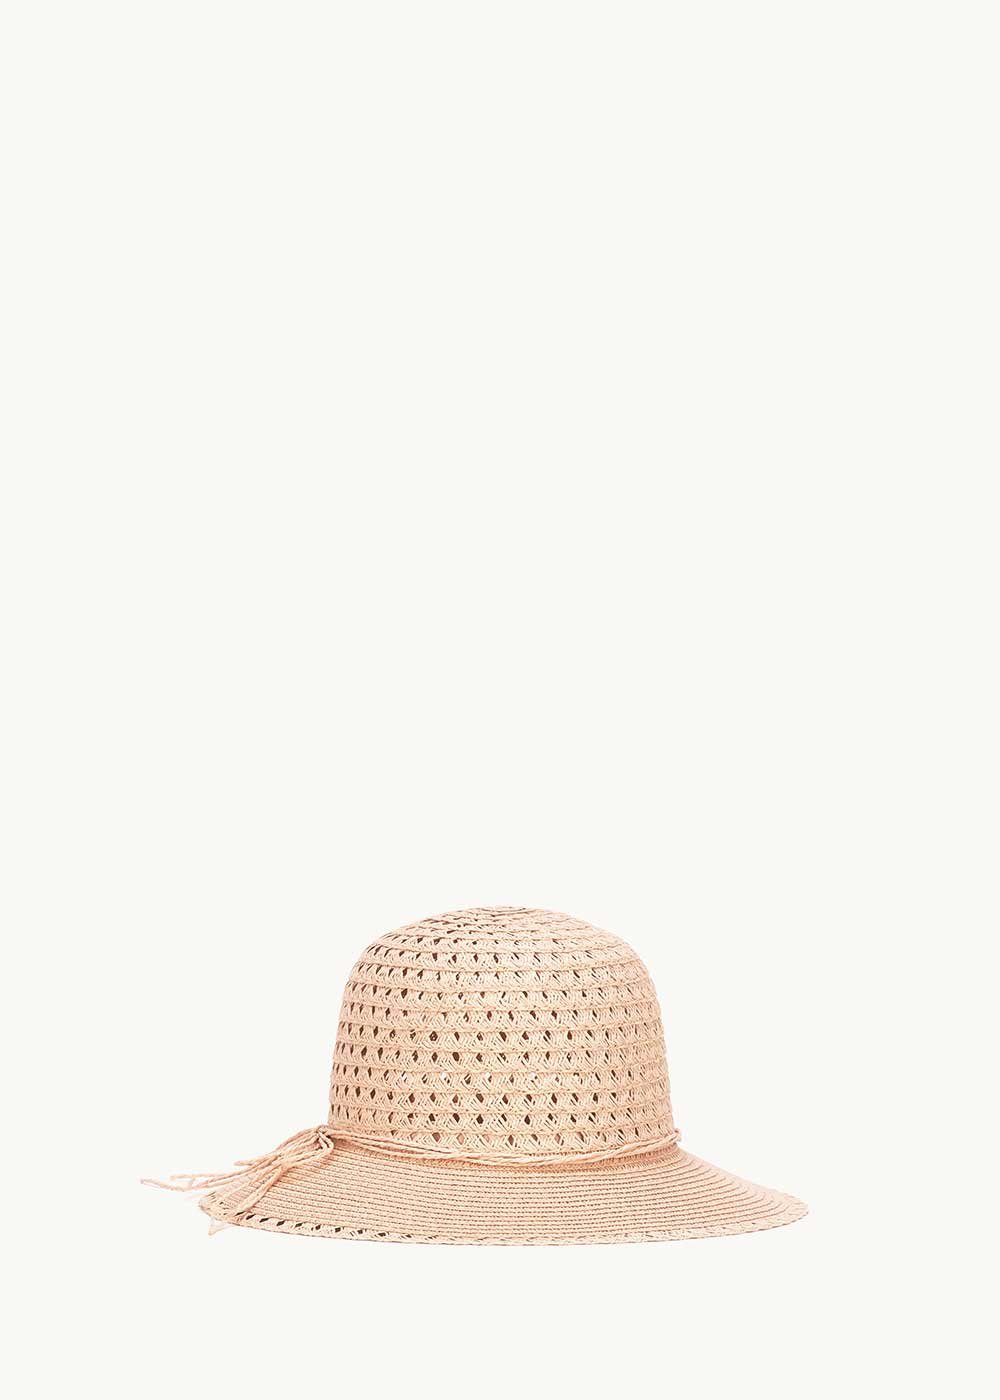 Natural collection's Cabot hat - Pink - Woman